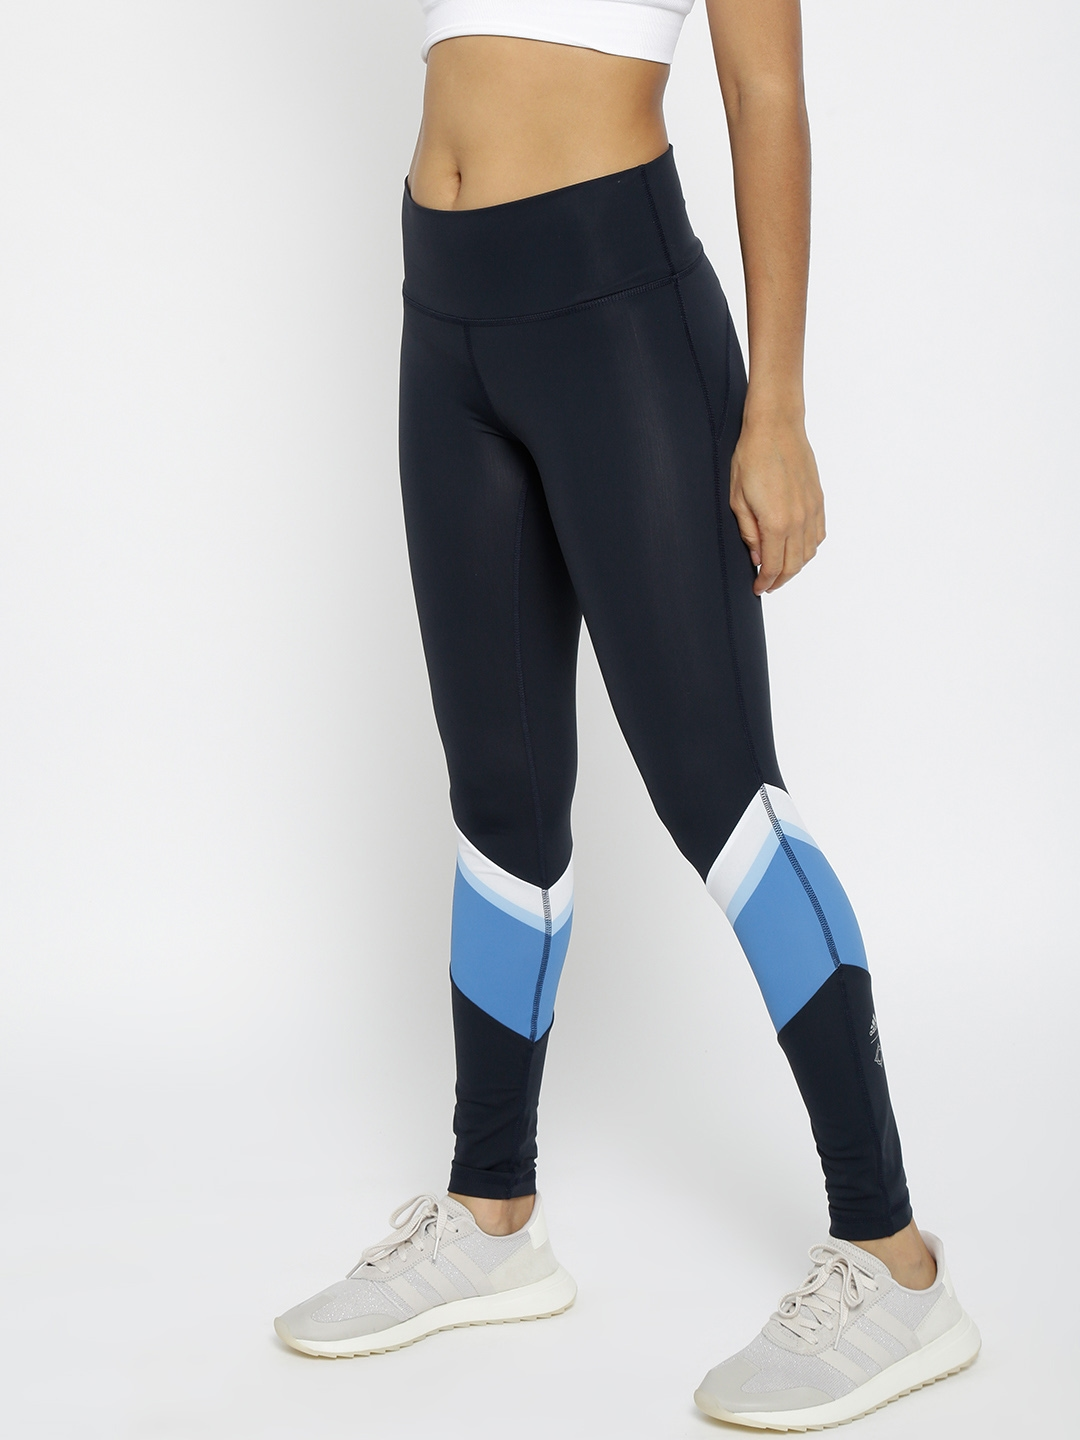 4a84a0eb394 Buy ADIDAS Navy Wanderlust P Long Training Tights - Tights for Women ...